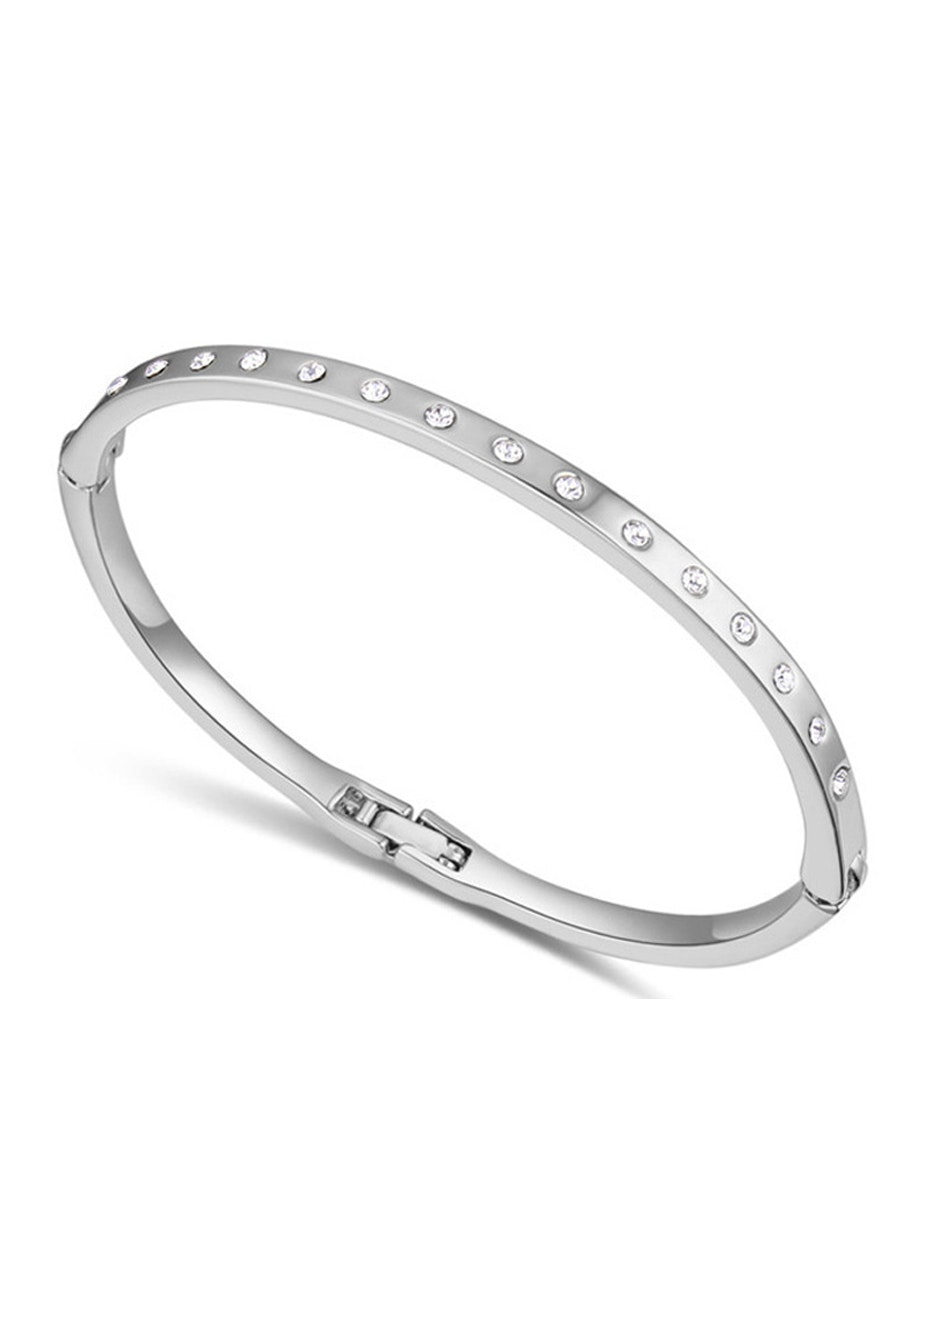 Classic Bangle Embellished with Crystals from Swarovski -WG